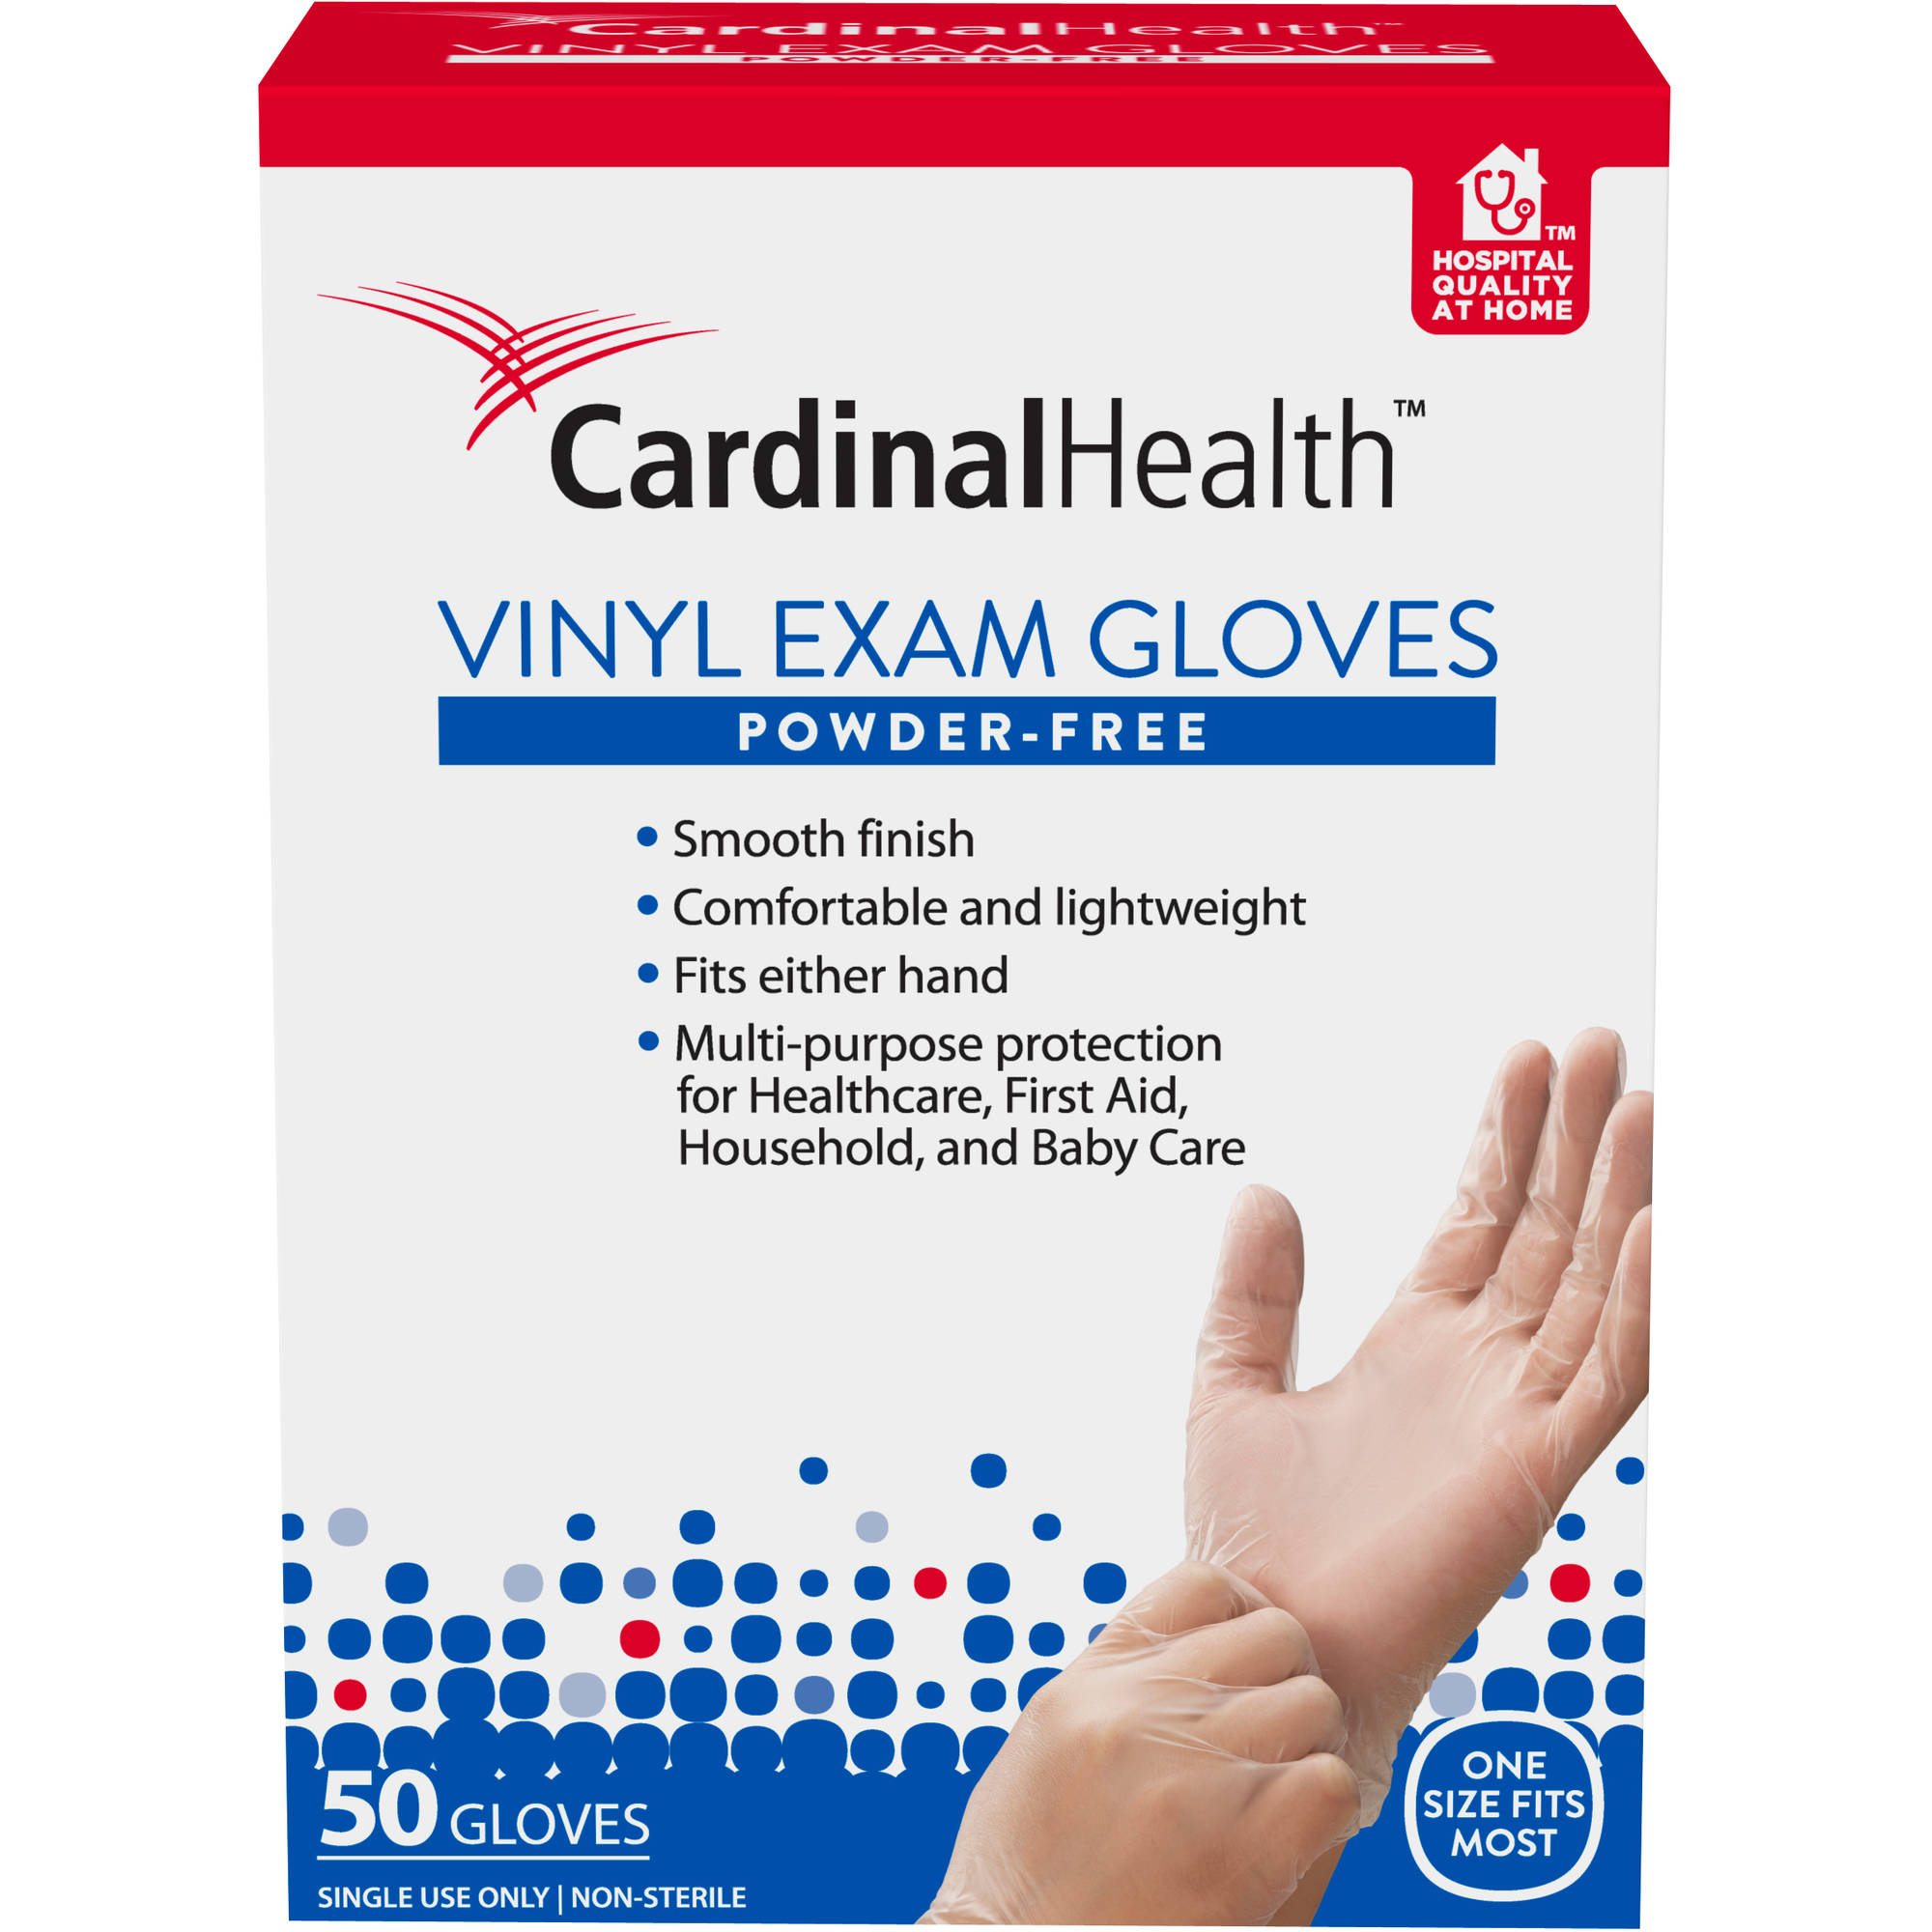 Cardinal Health Powder-Free Vinyl Exam Gloves, 50 count